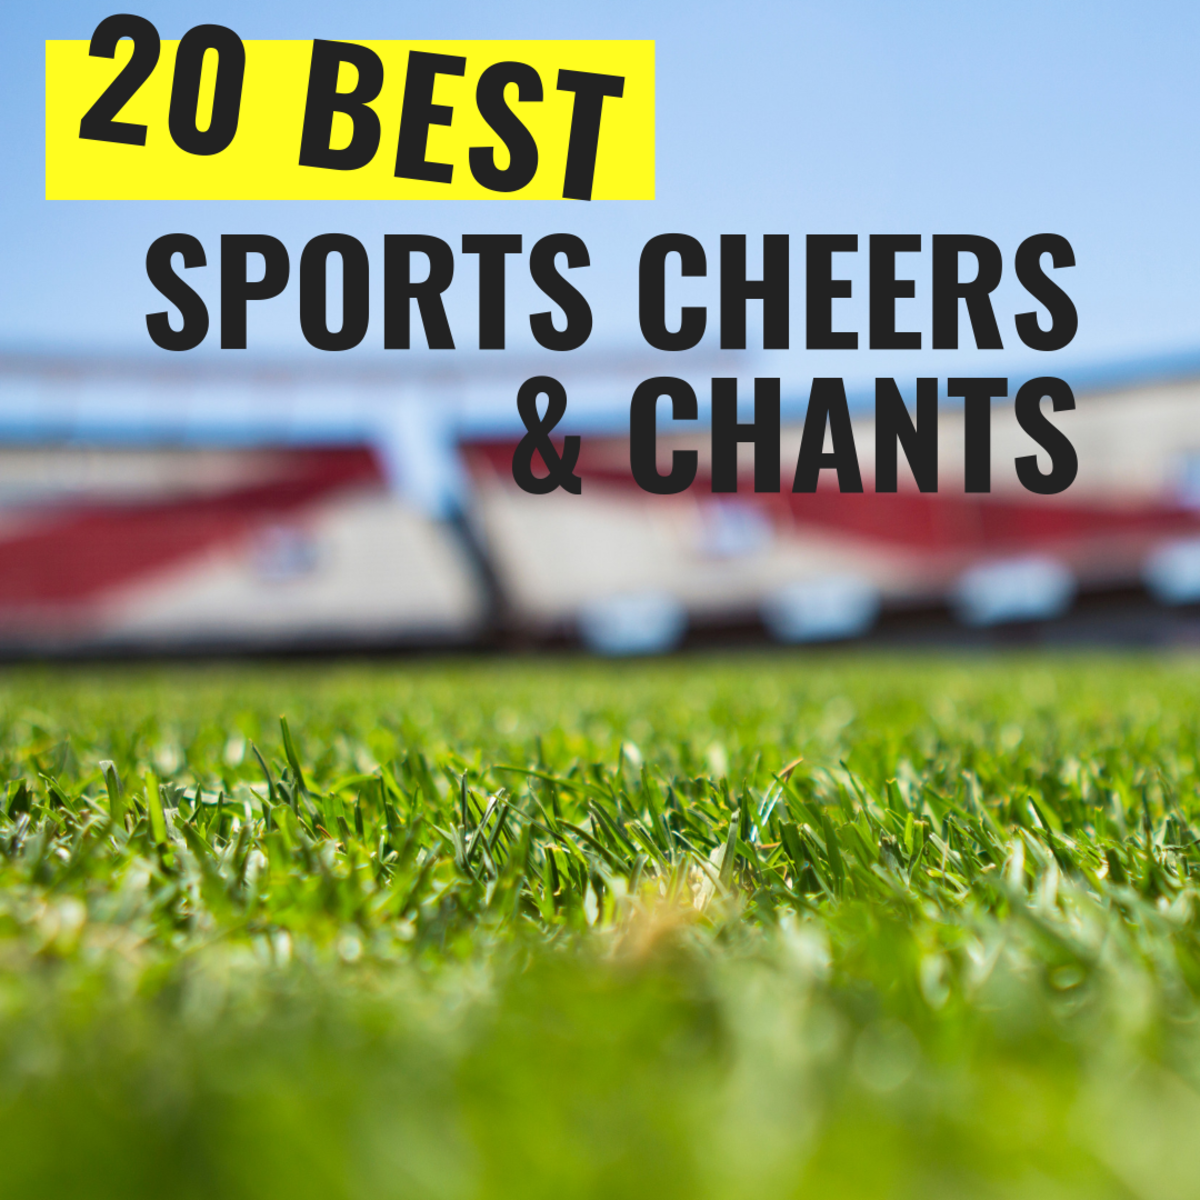 20 Best Team Cheers and Chants for Sports